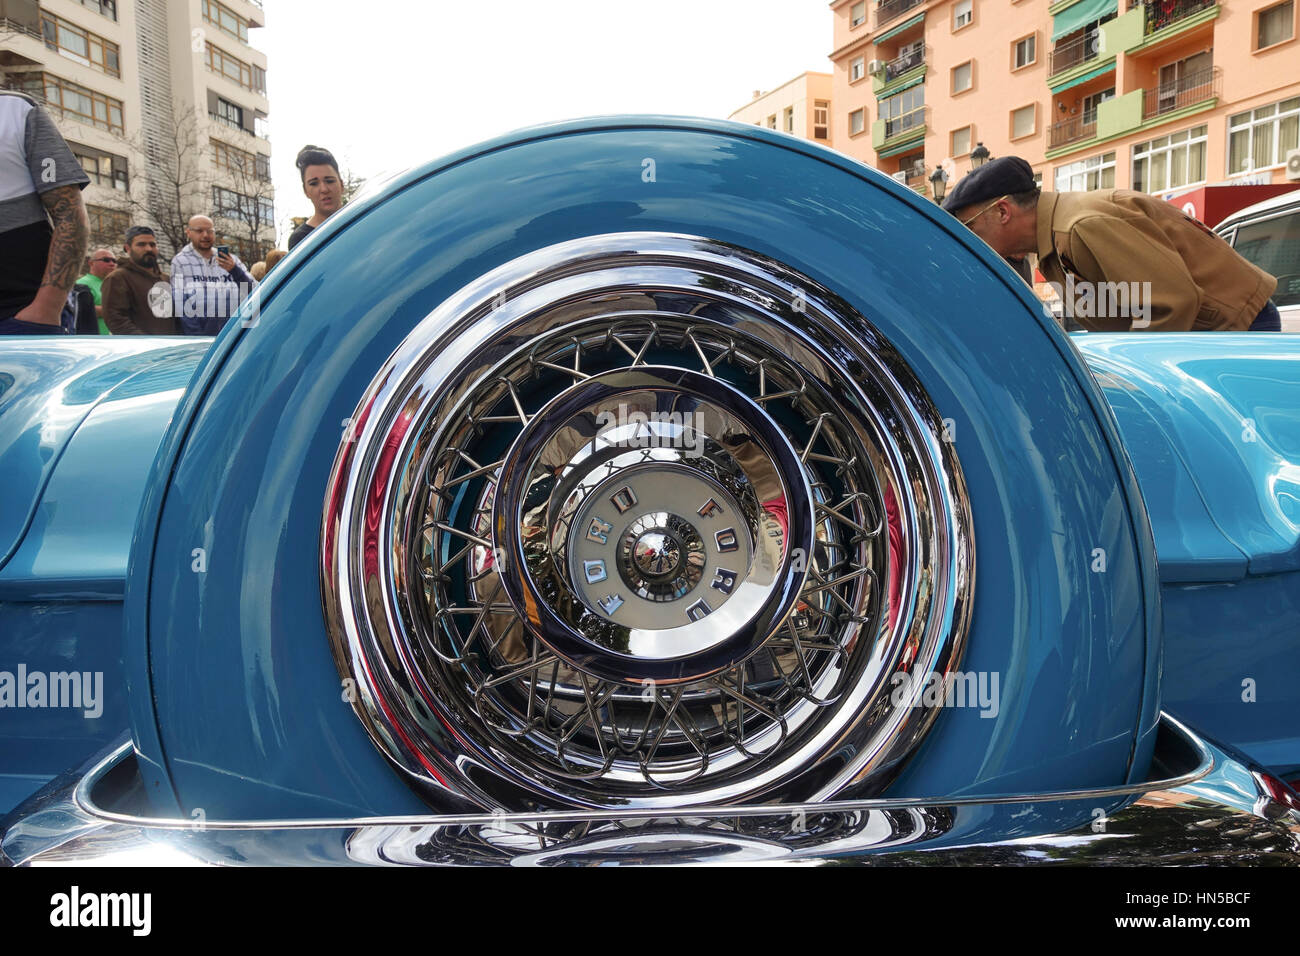 Ford thunderbird from the fifties on display at 2016 Rockabilly festival, Rockin Race Jamboree, Torremolinos, Andalusia, - Stock Image